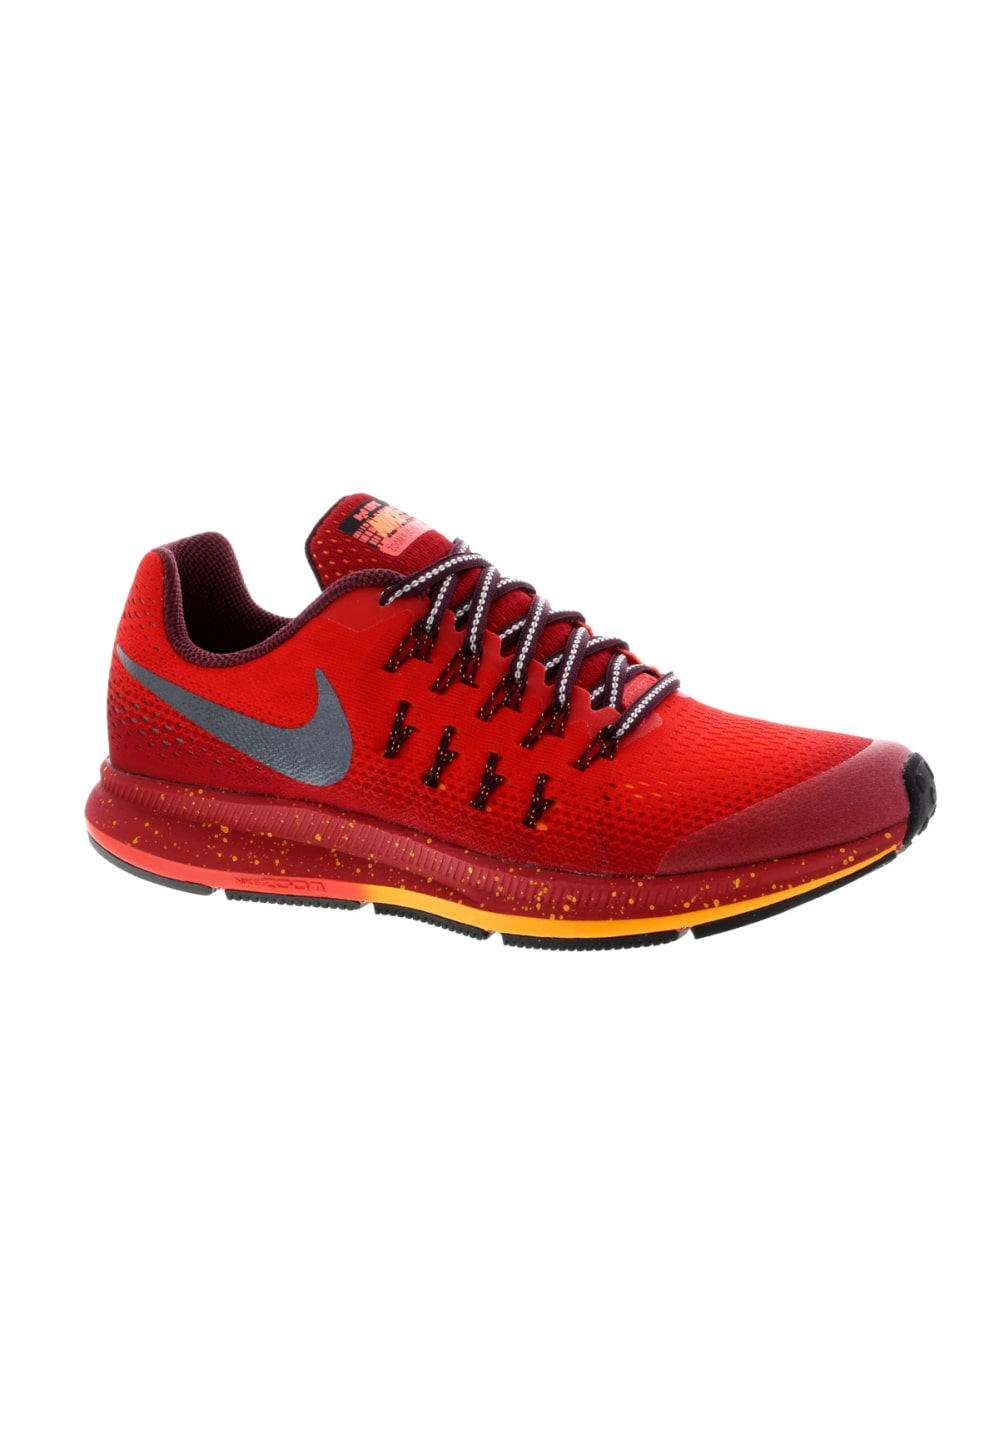 4667a561386d Next. -50%. This product is currently out of stock. Nike. Air Zoom Pegasus  33 Shield GS - Running shoes